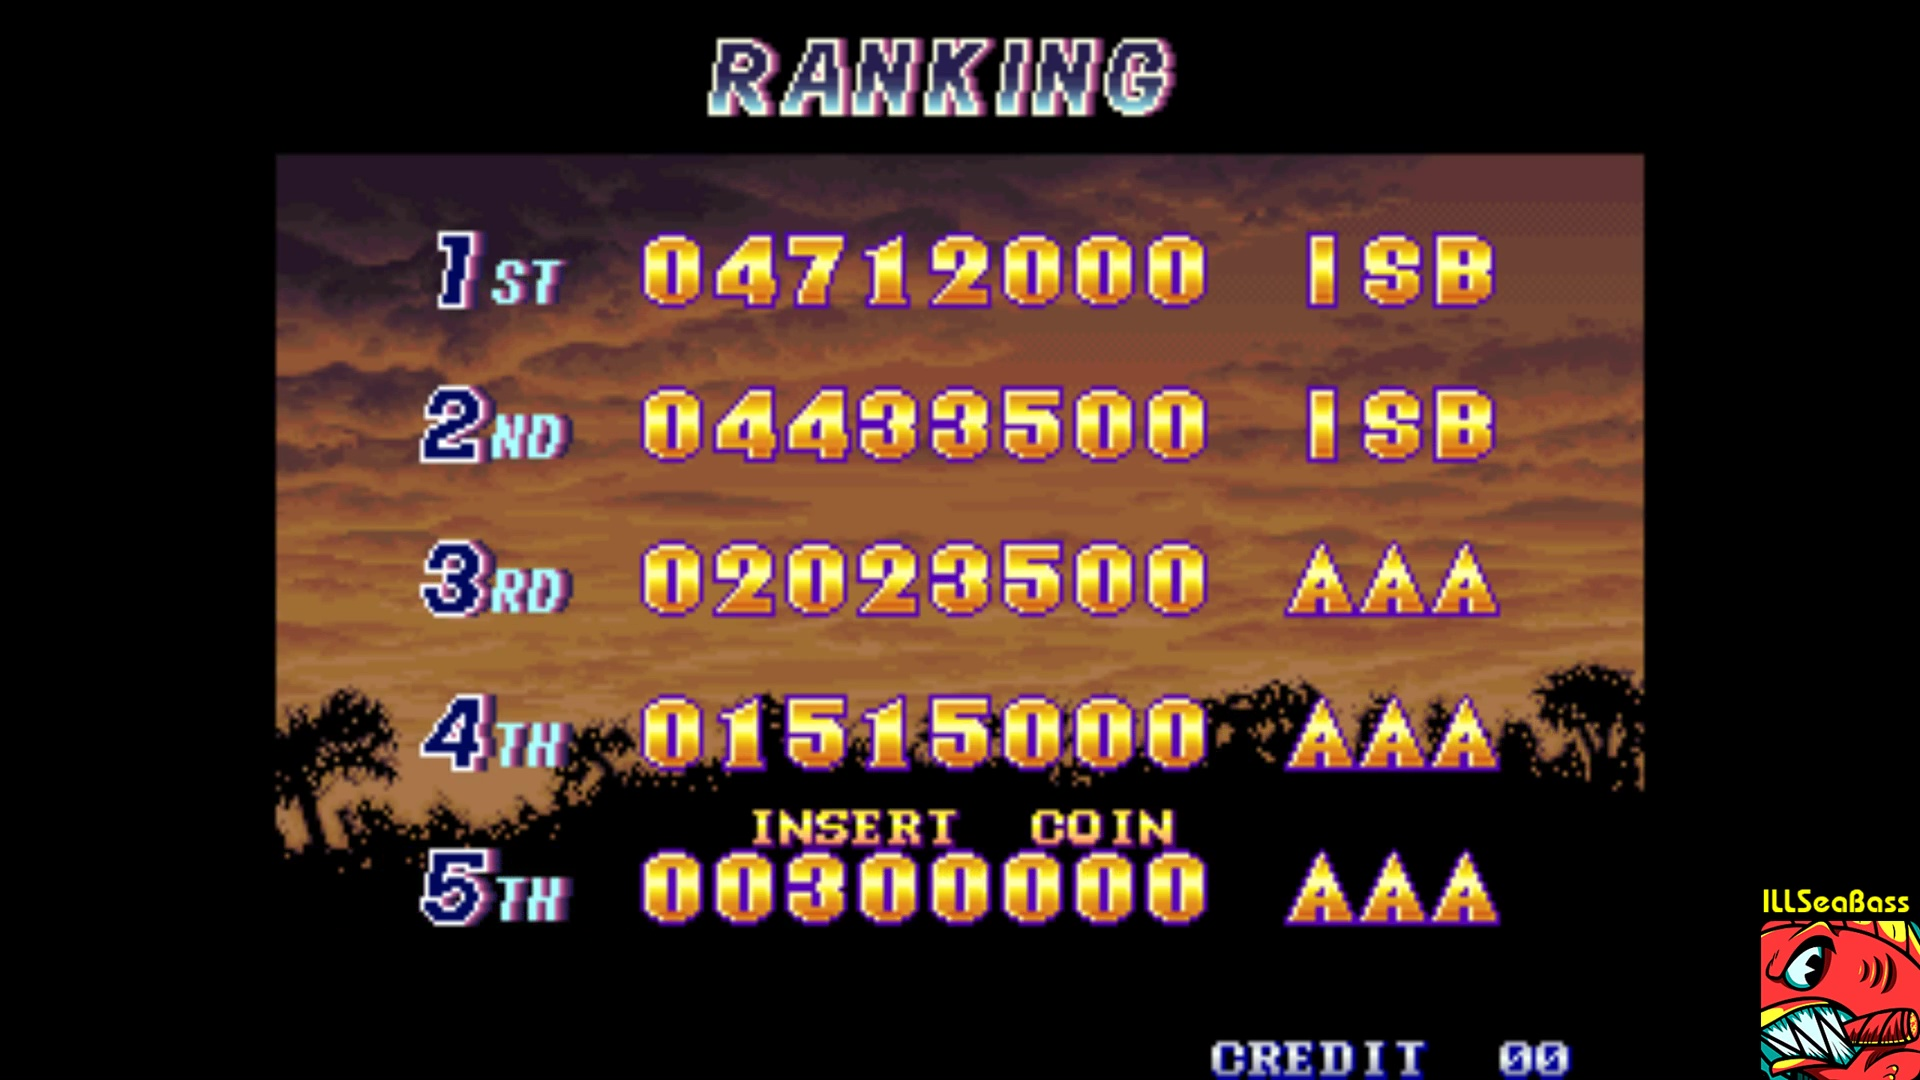 ILLSeaBass: Shock Troopers [shocktroa] (Arcade Emulated / M.A.M.E.) 4,712,000 points on 2017-11-05 21:10:49